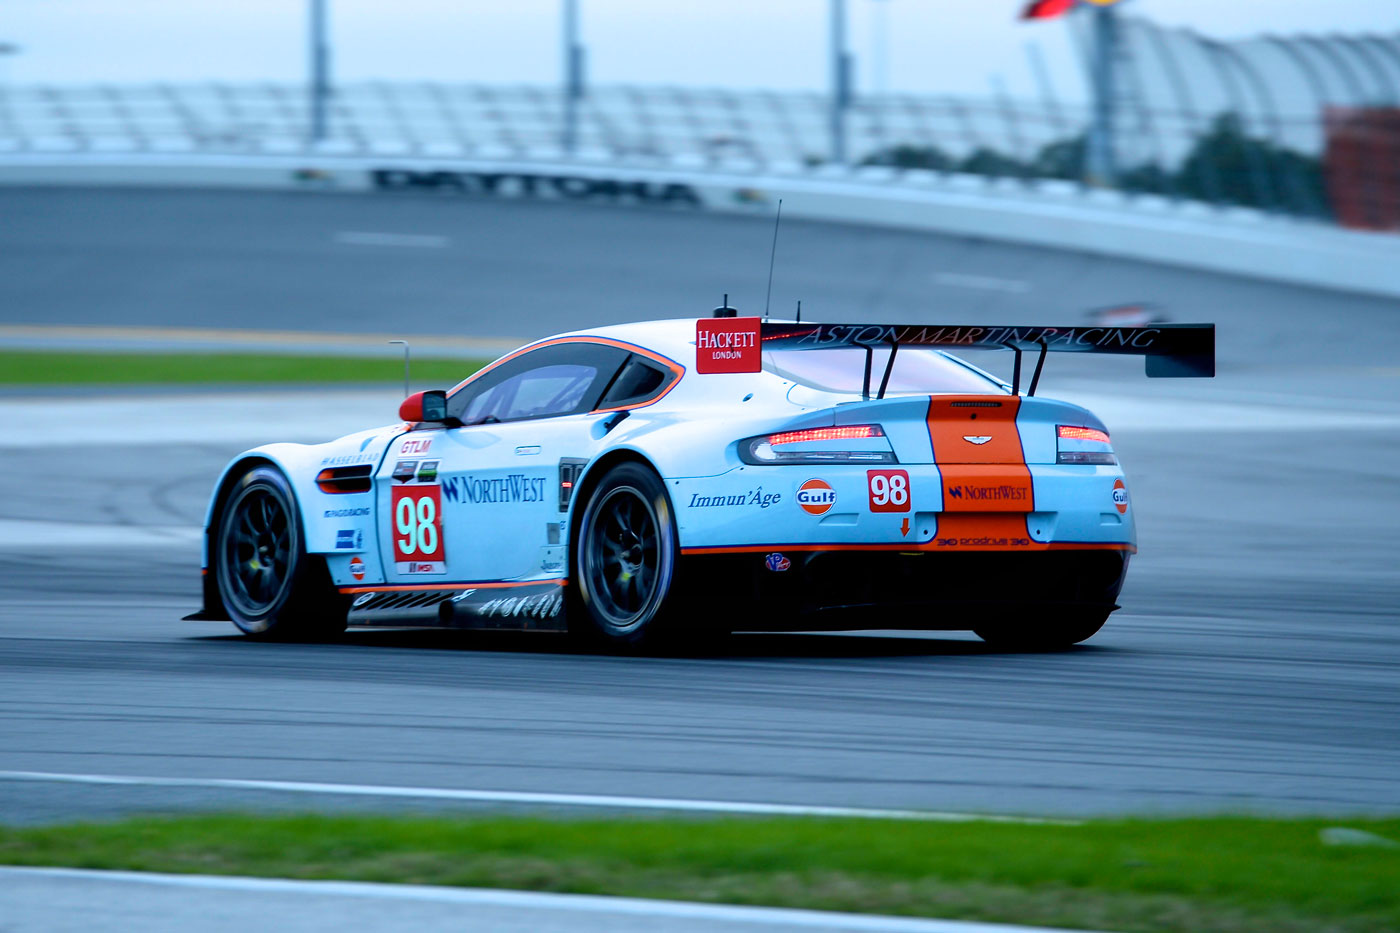 Aston Martin continues strong pace